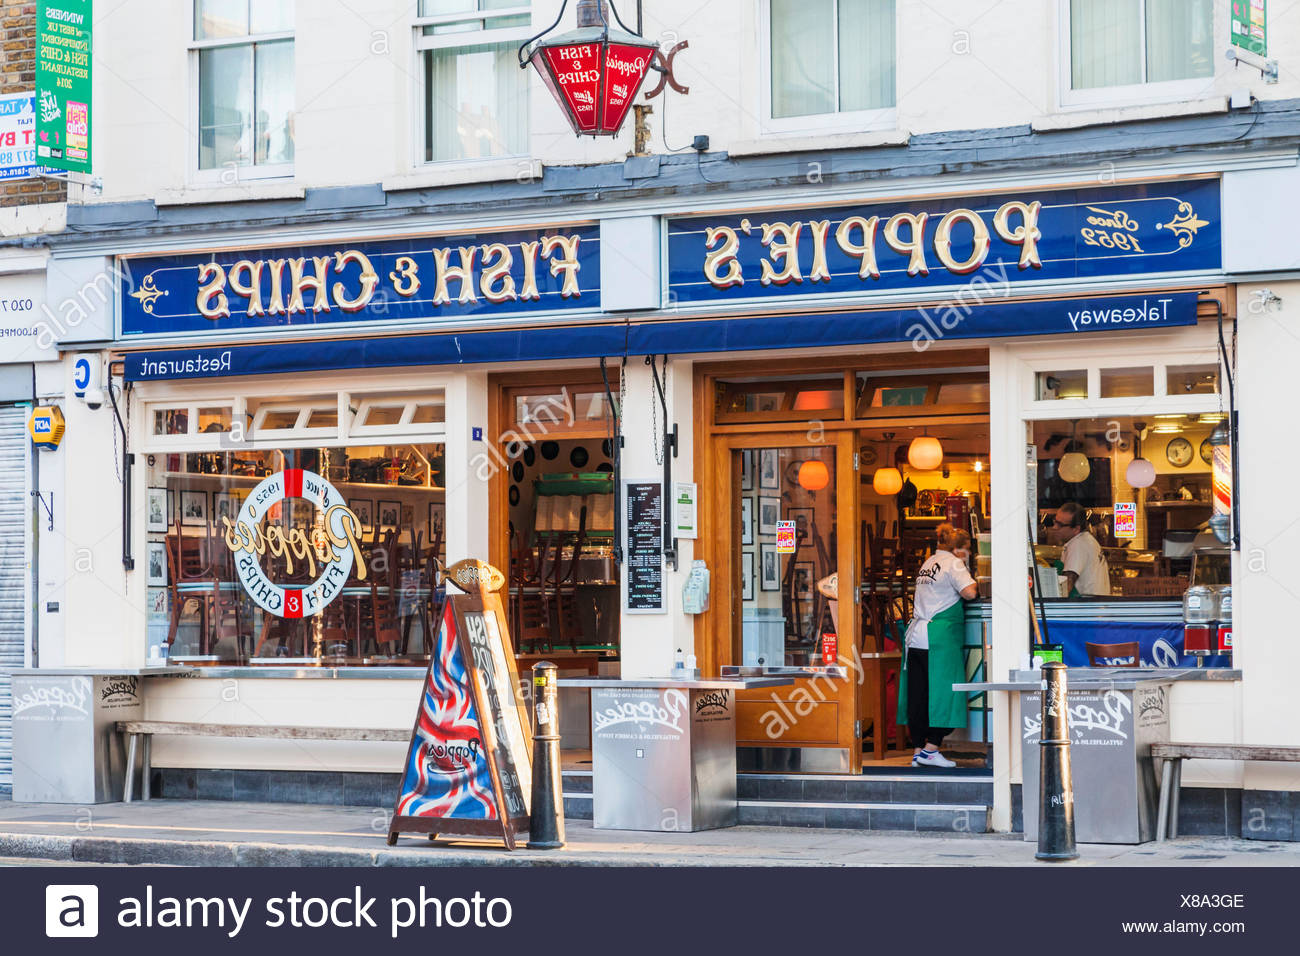 L'Angleterre, Londres, Shoreditch, Poppy's Fish and Chip Restaurant Photo Stock